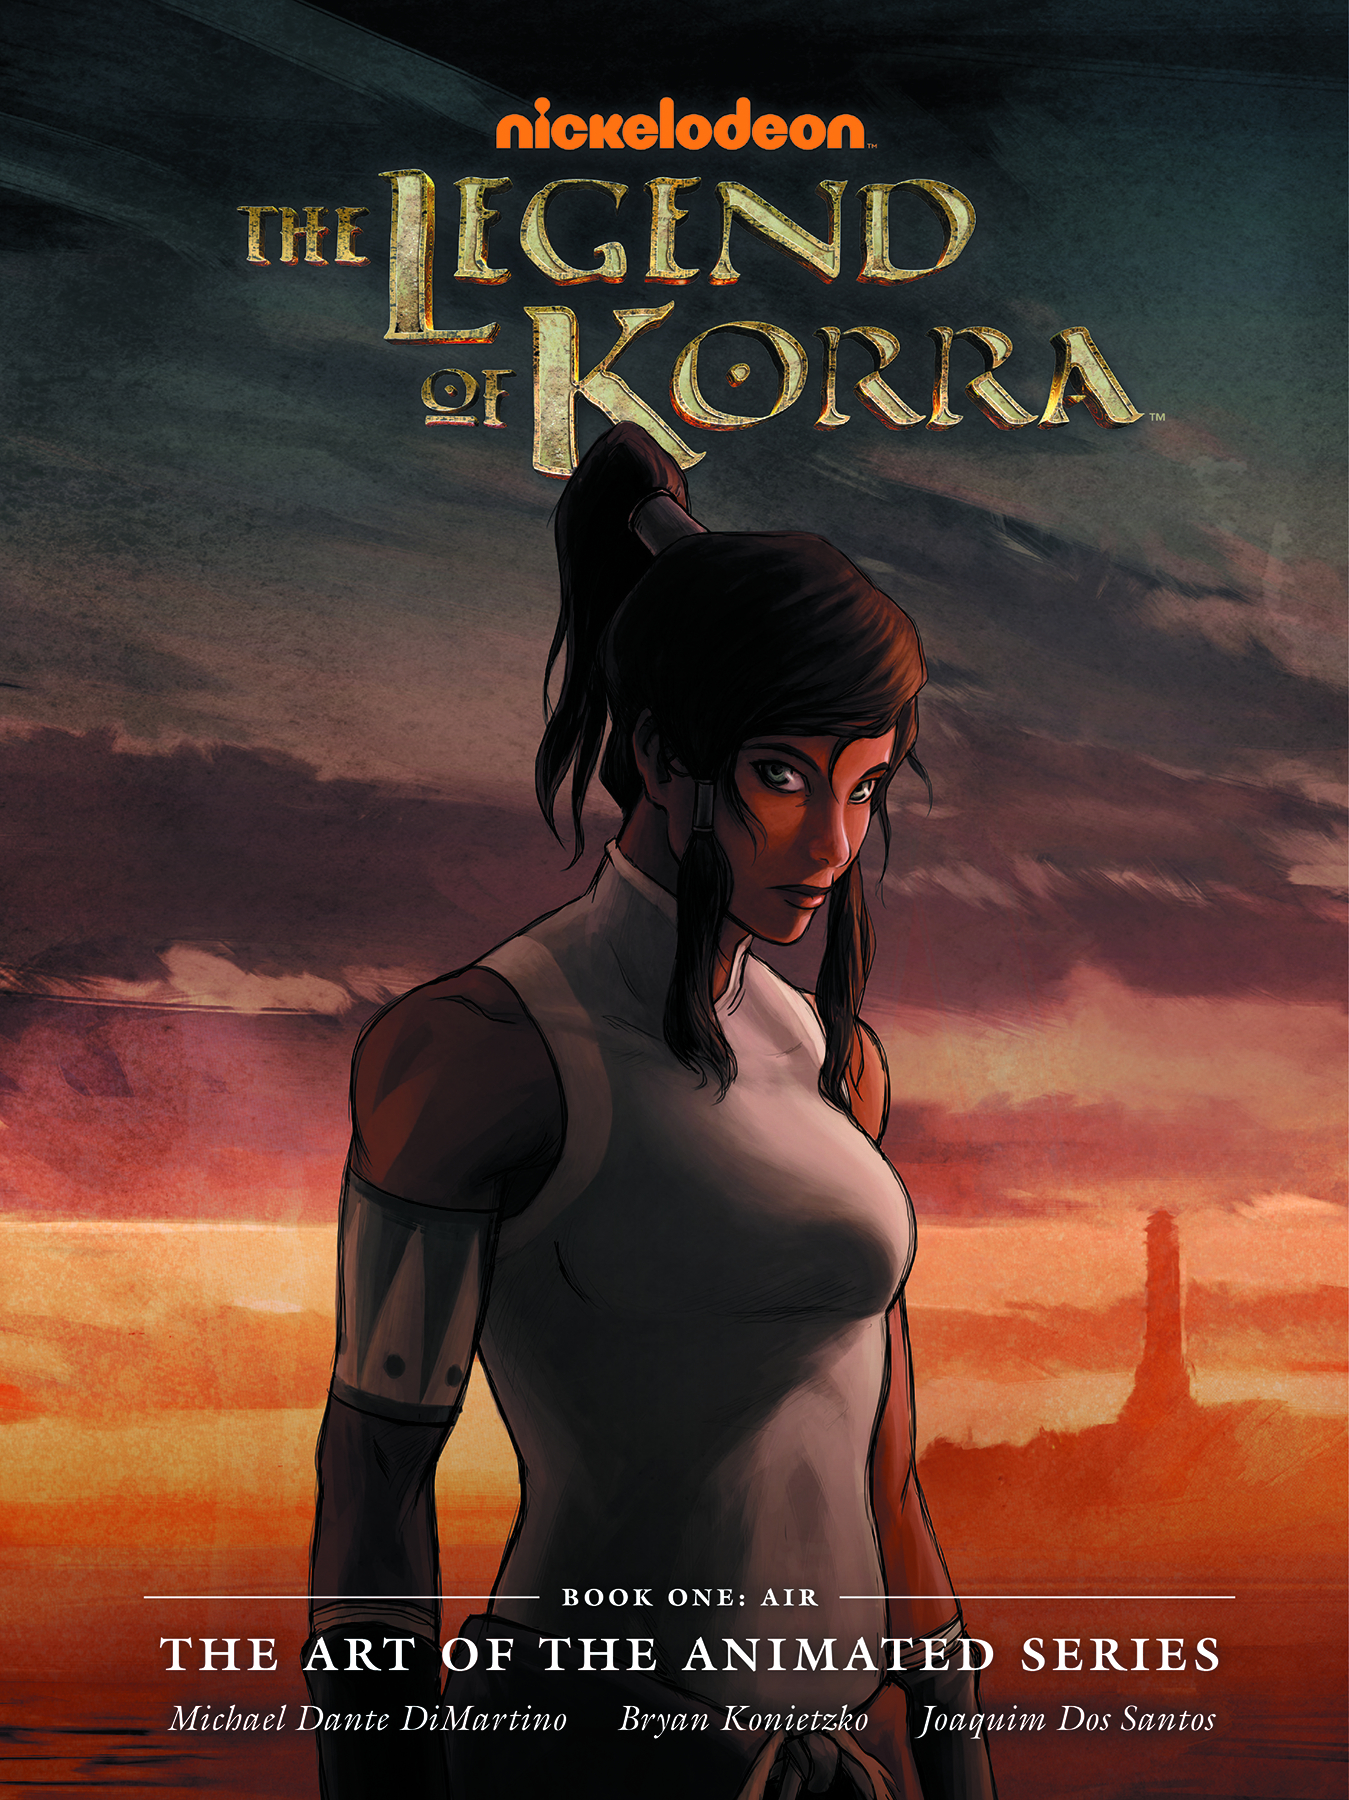 LEGEND KORRA ART ANIMATED SERIES HC BOOK 01 AIR